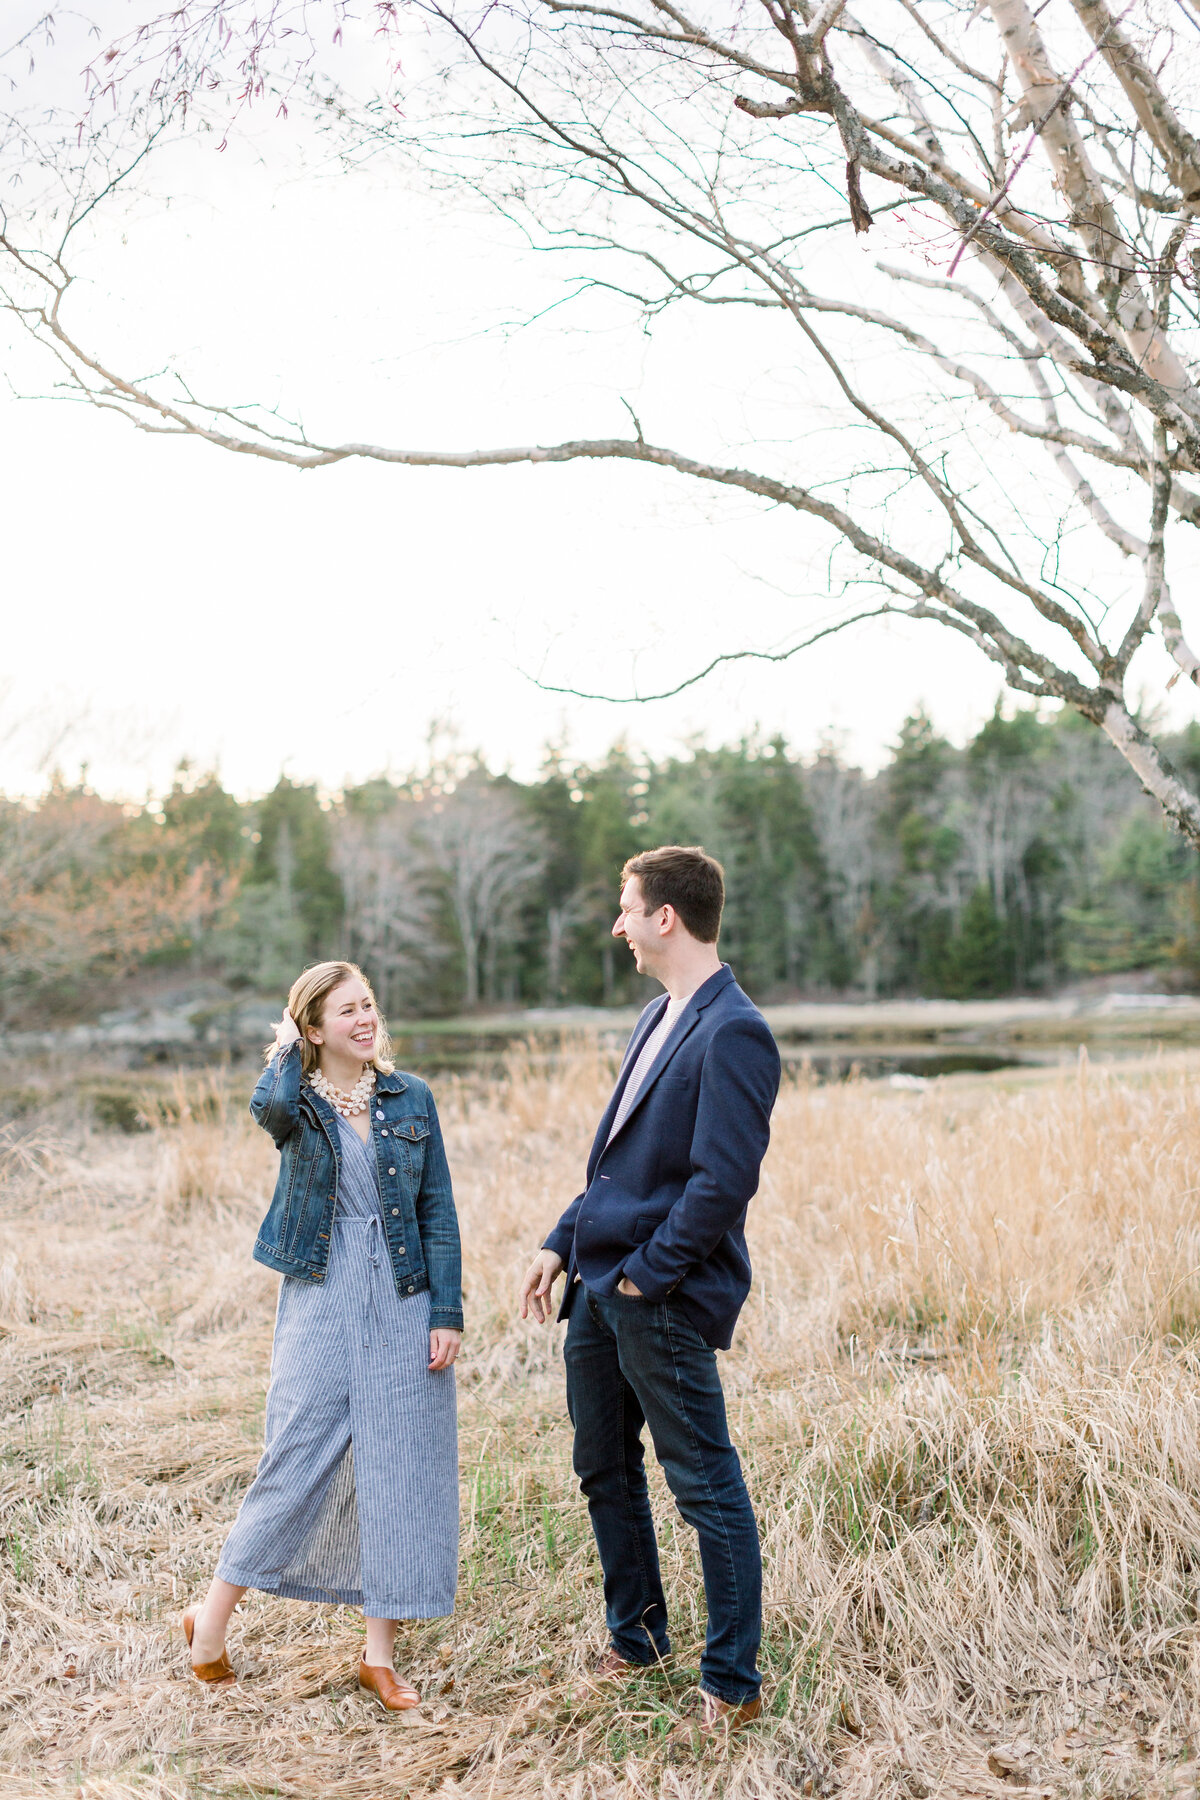 Rachel Buckley Weddings Photography Maine Wedding Lifestyle Studio Joyful Timeless Imagery Natural Portraits Destination3